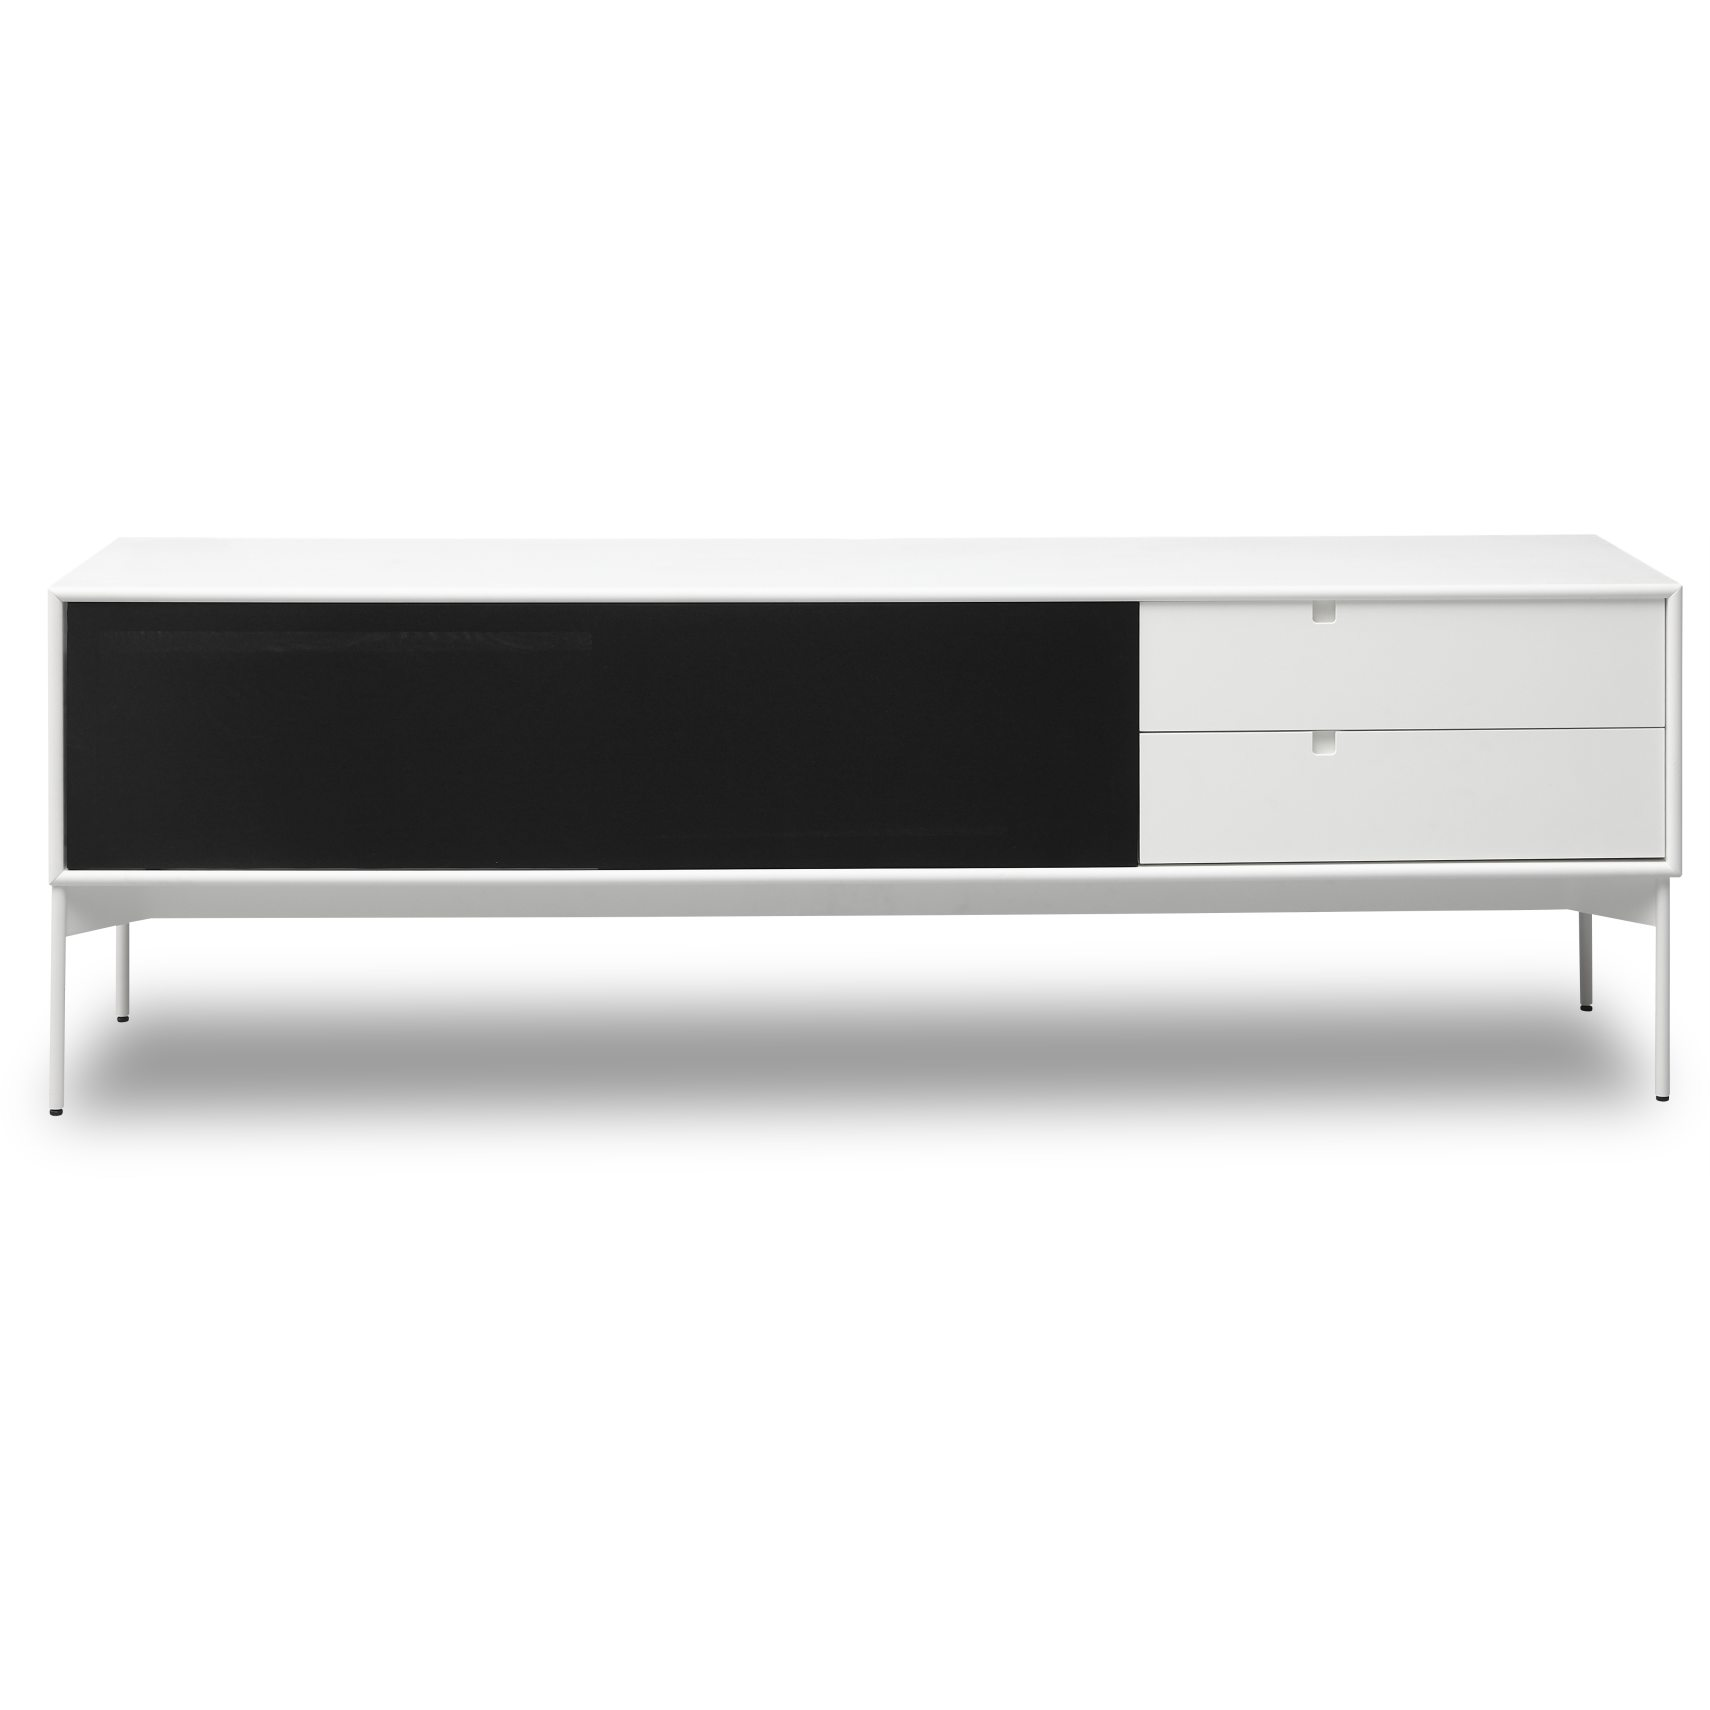 Kube AV TV unit - TV unit